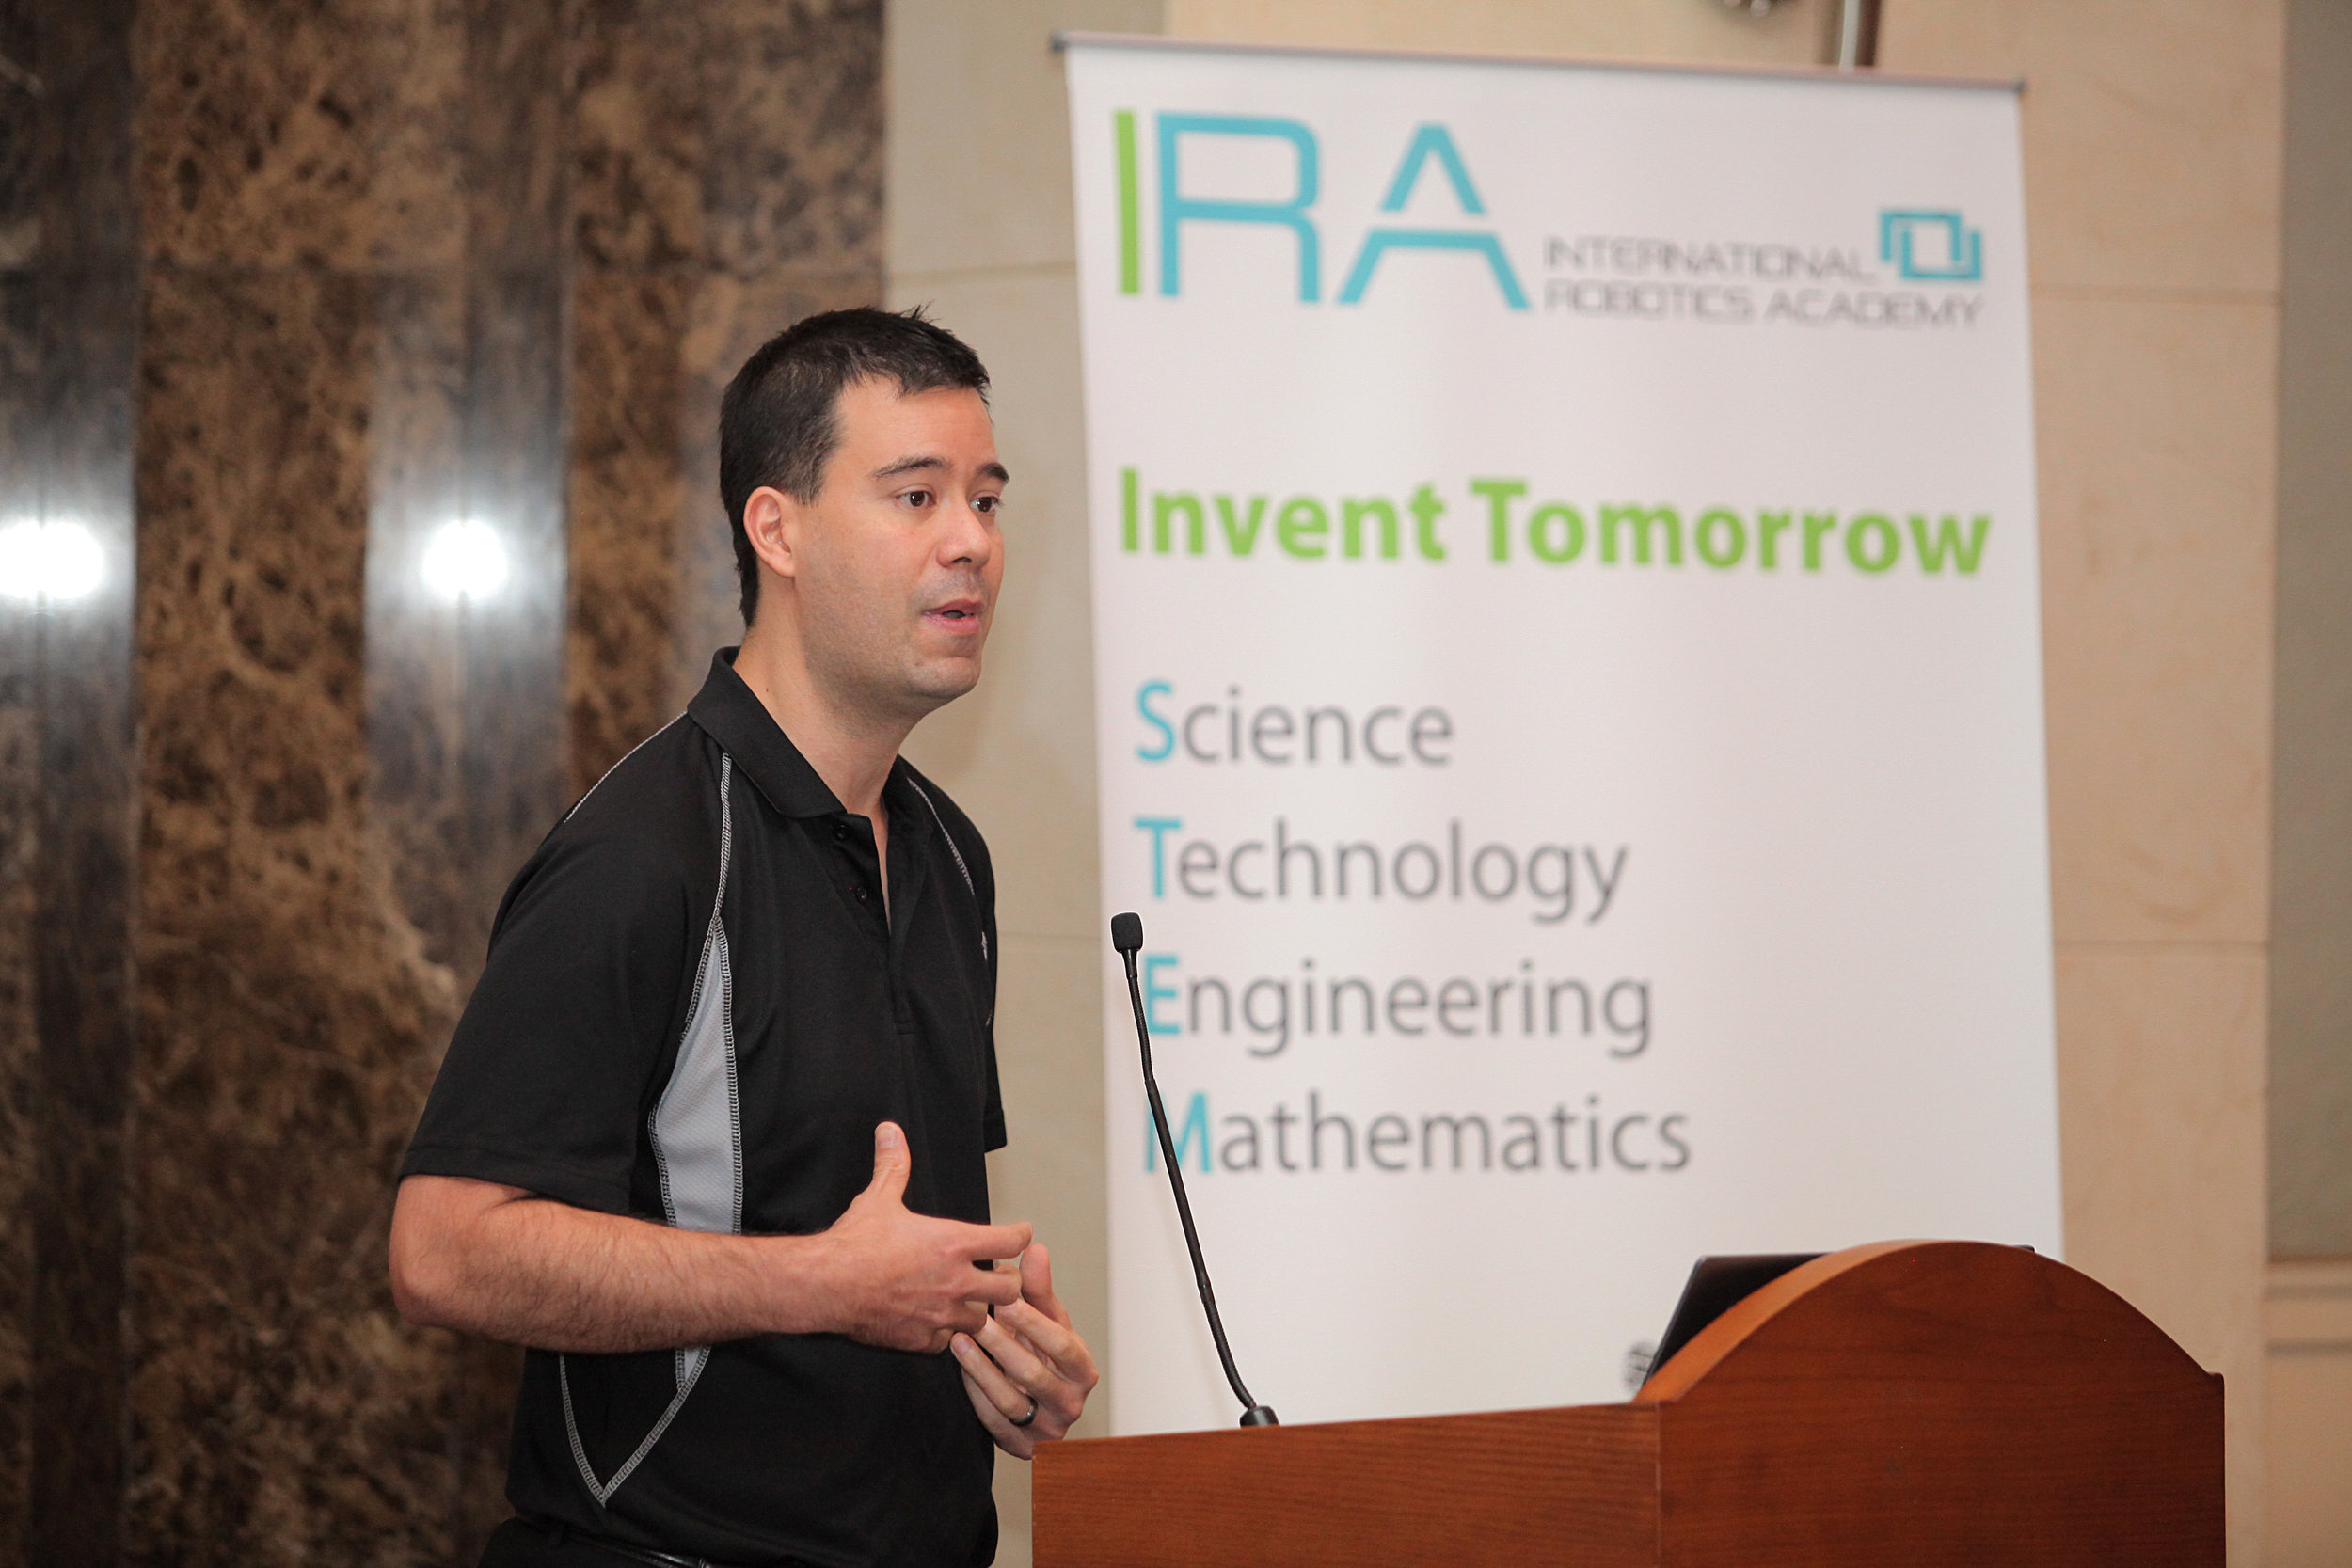 Dr. Damien during one of IRA's STEM Seminars in Amman - Jordan.